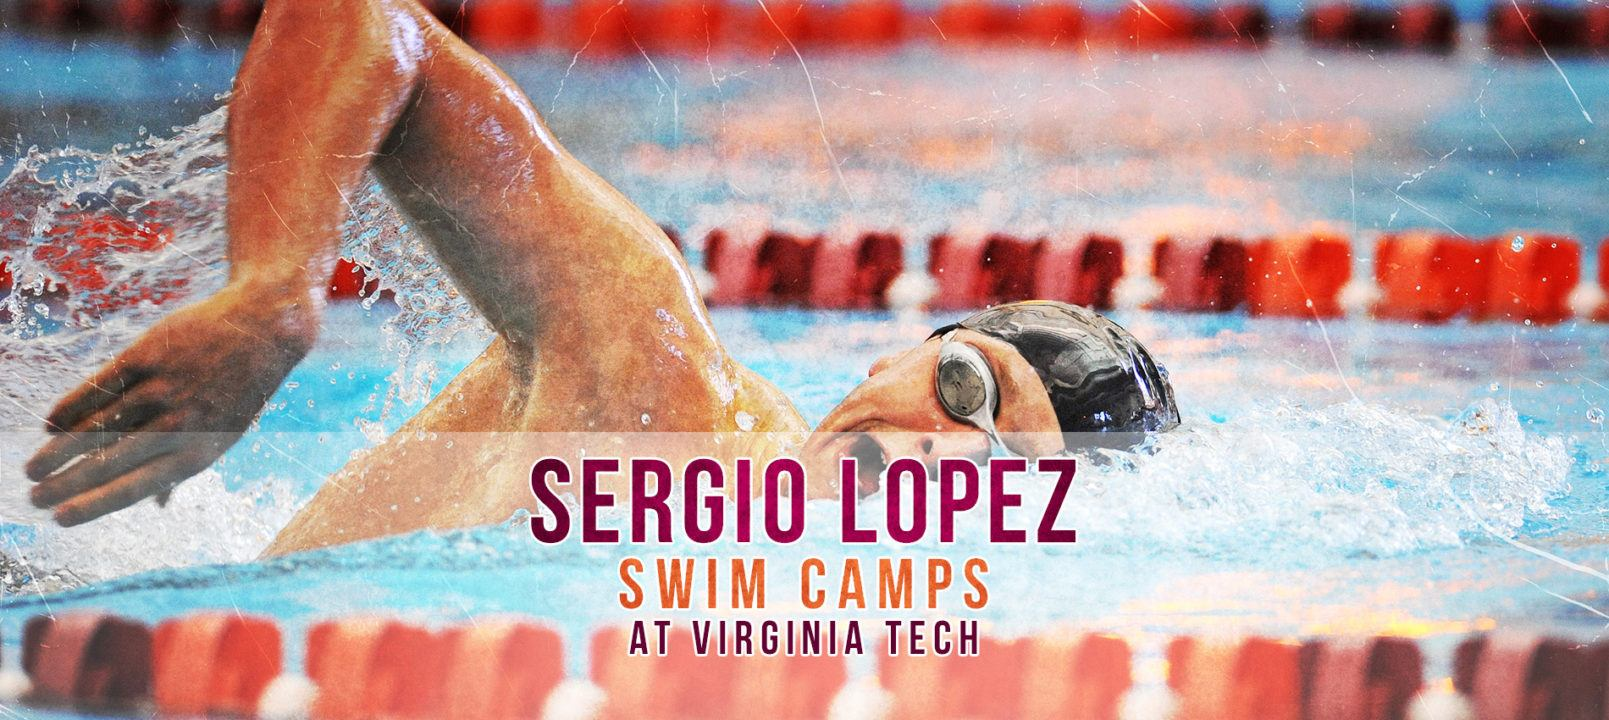 Sergio Lopez Swim Camps at Virginia Tech – Sign Up Today